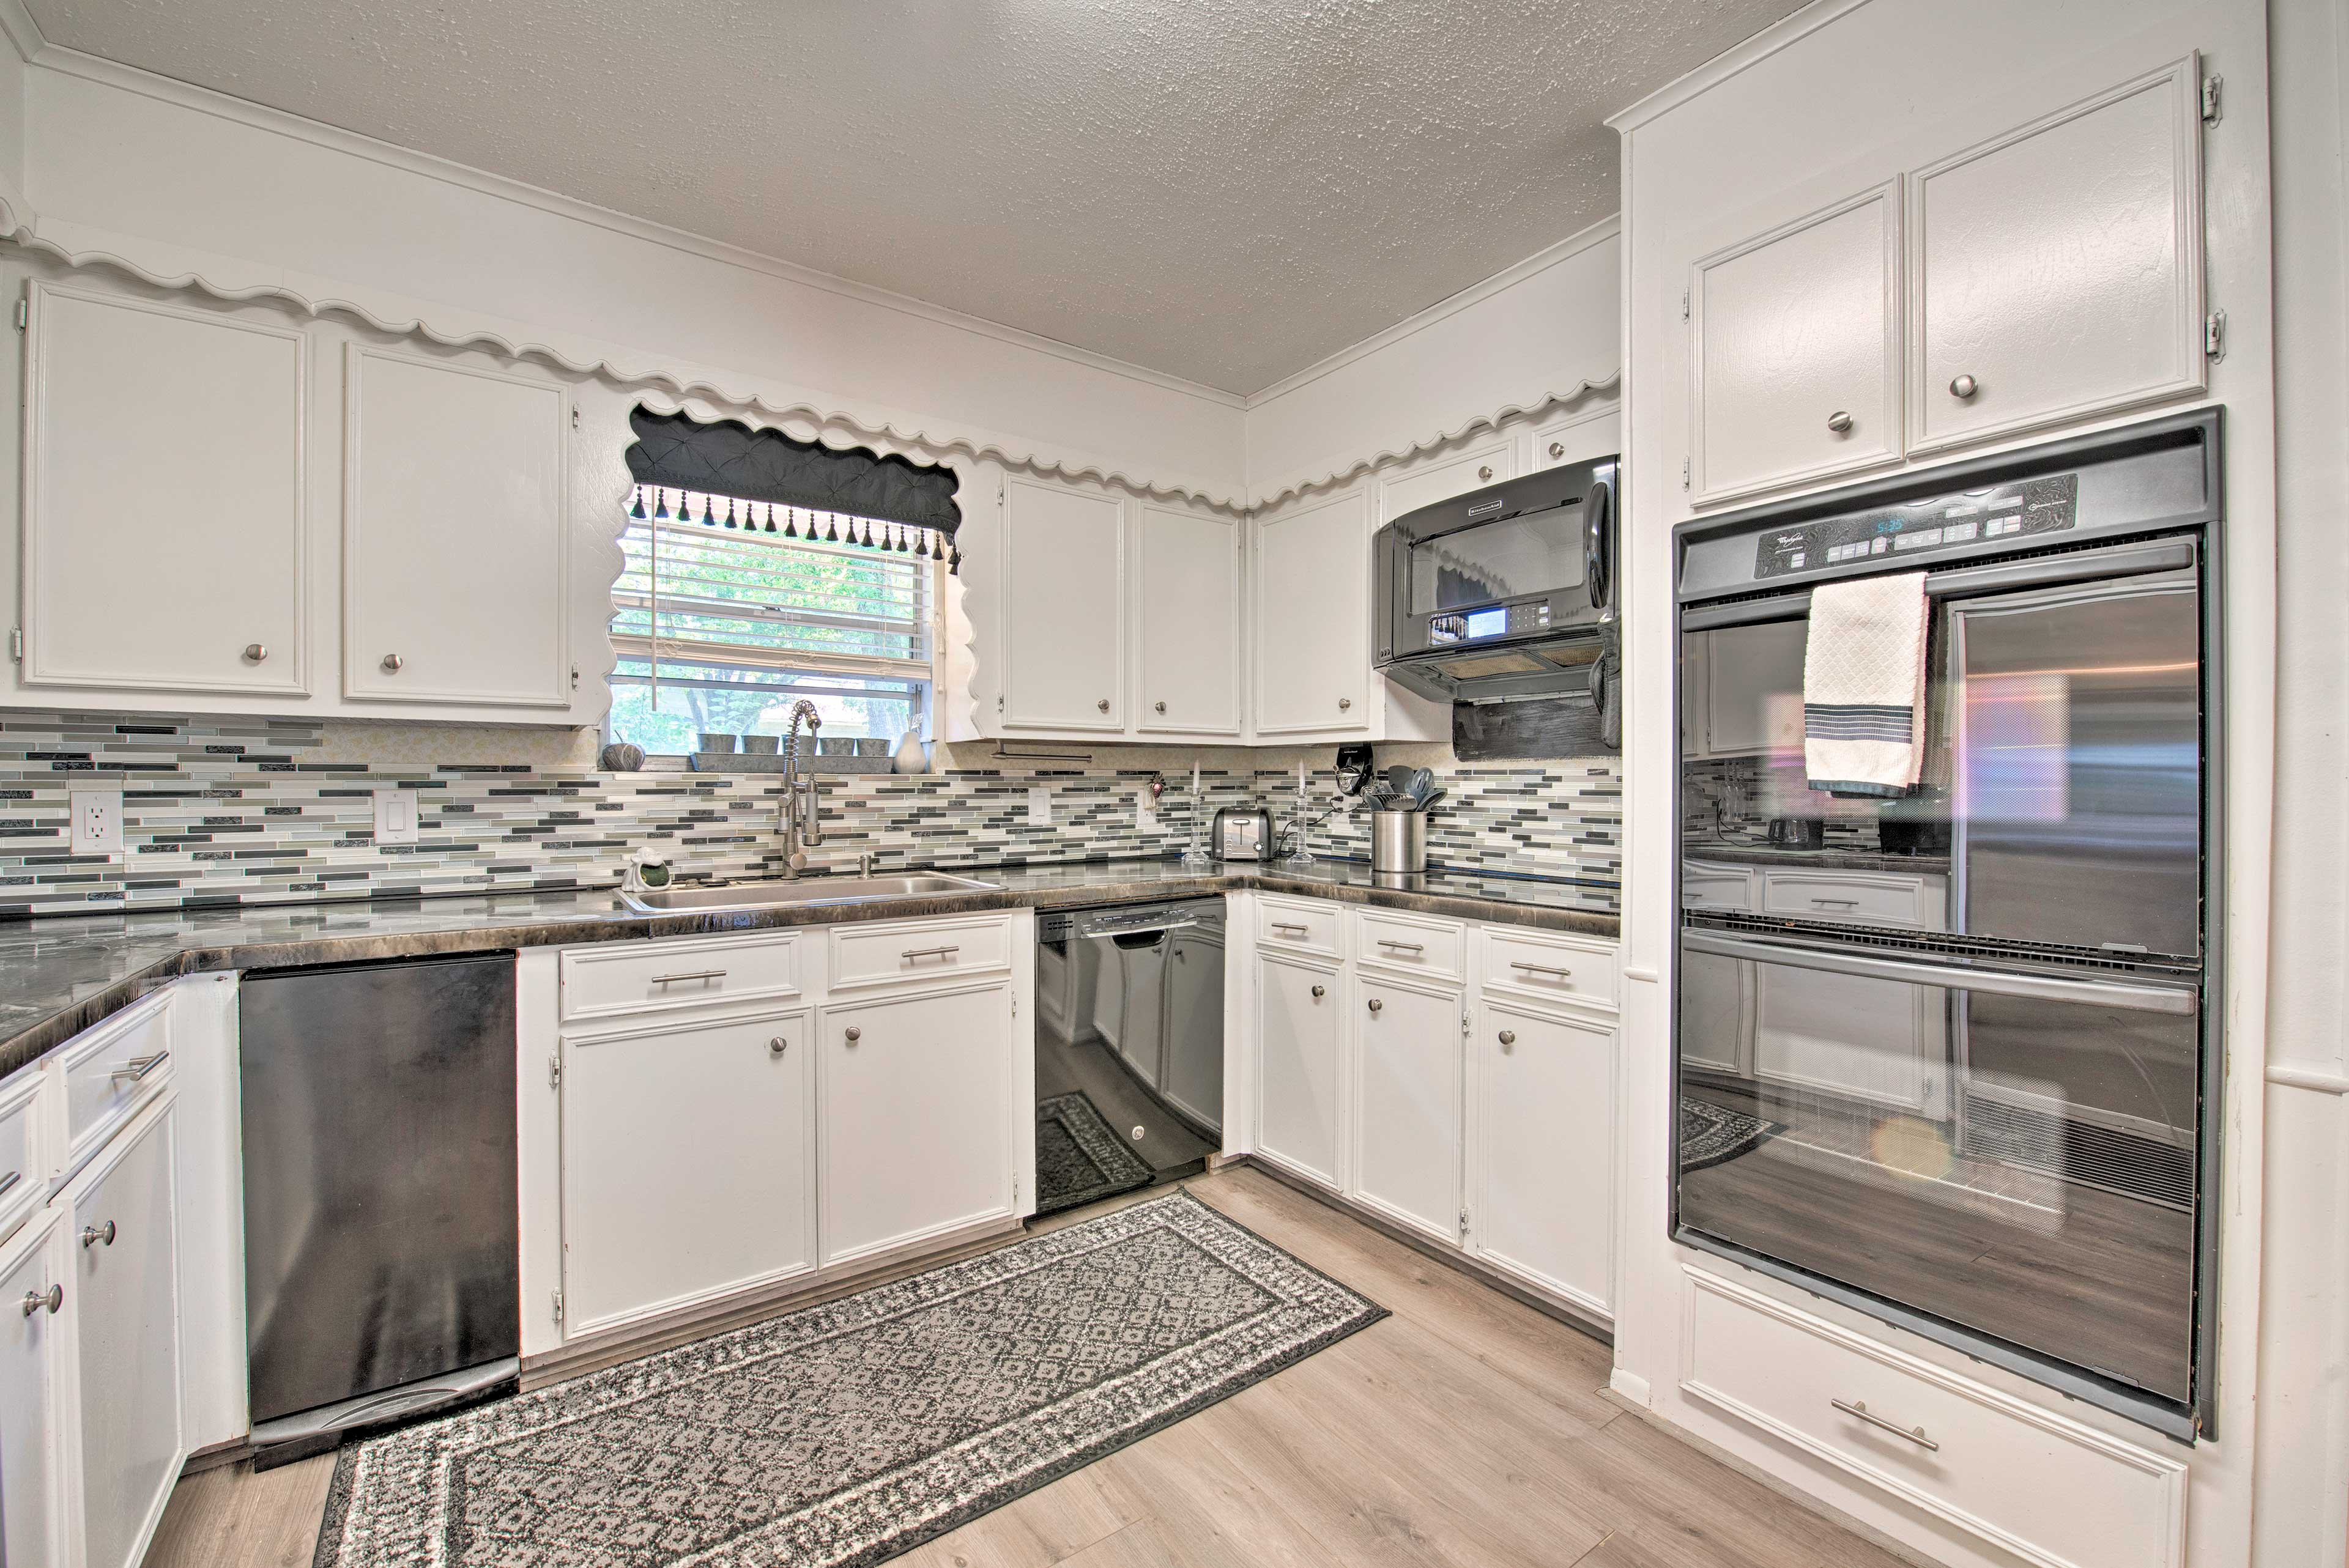 The fully equipped kitchen makes meal preparation a breeze.